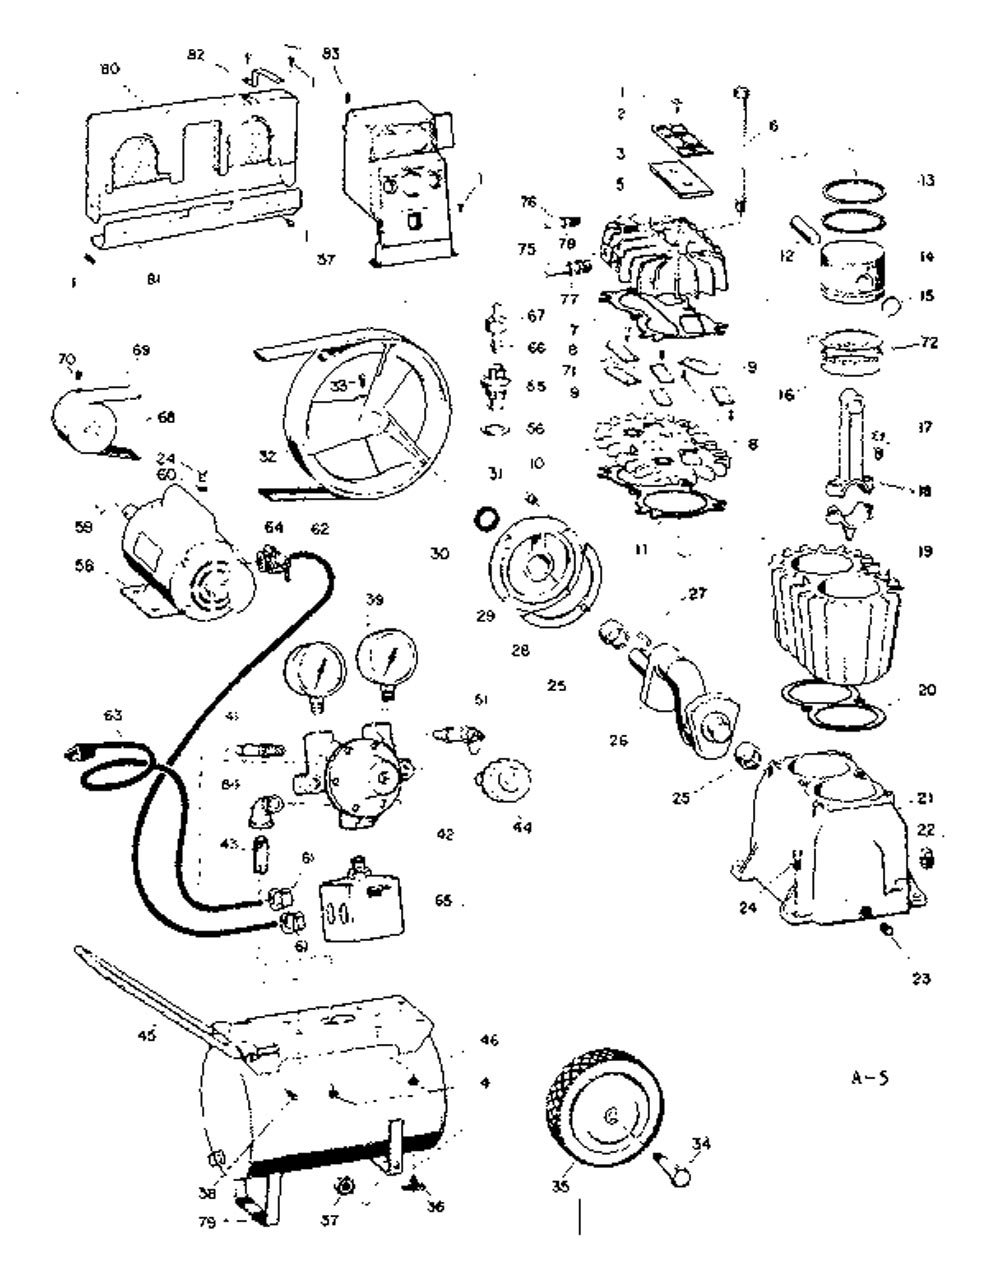 Sears Craftsman Air Compressor Parts 106.154580